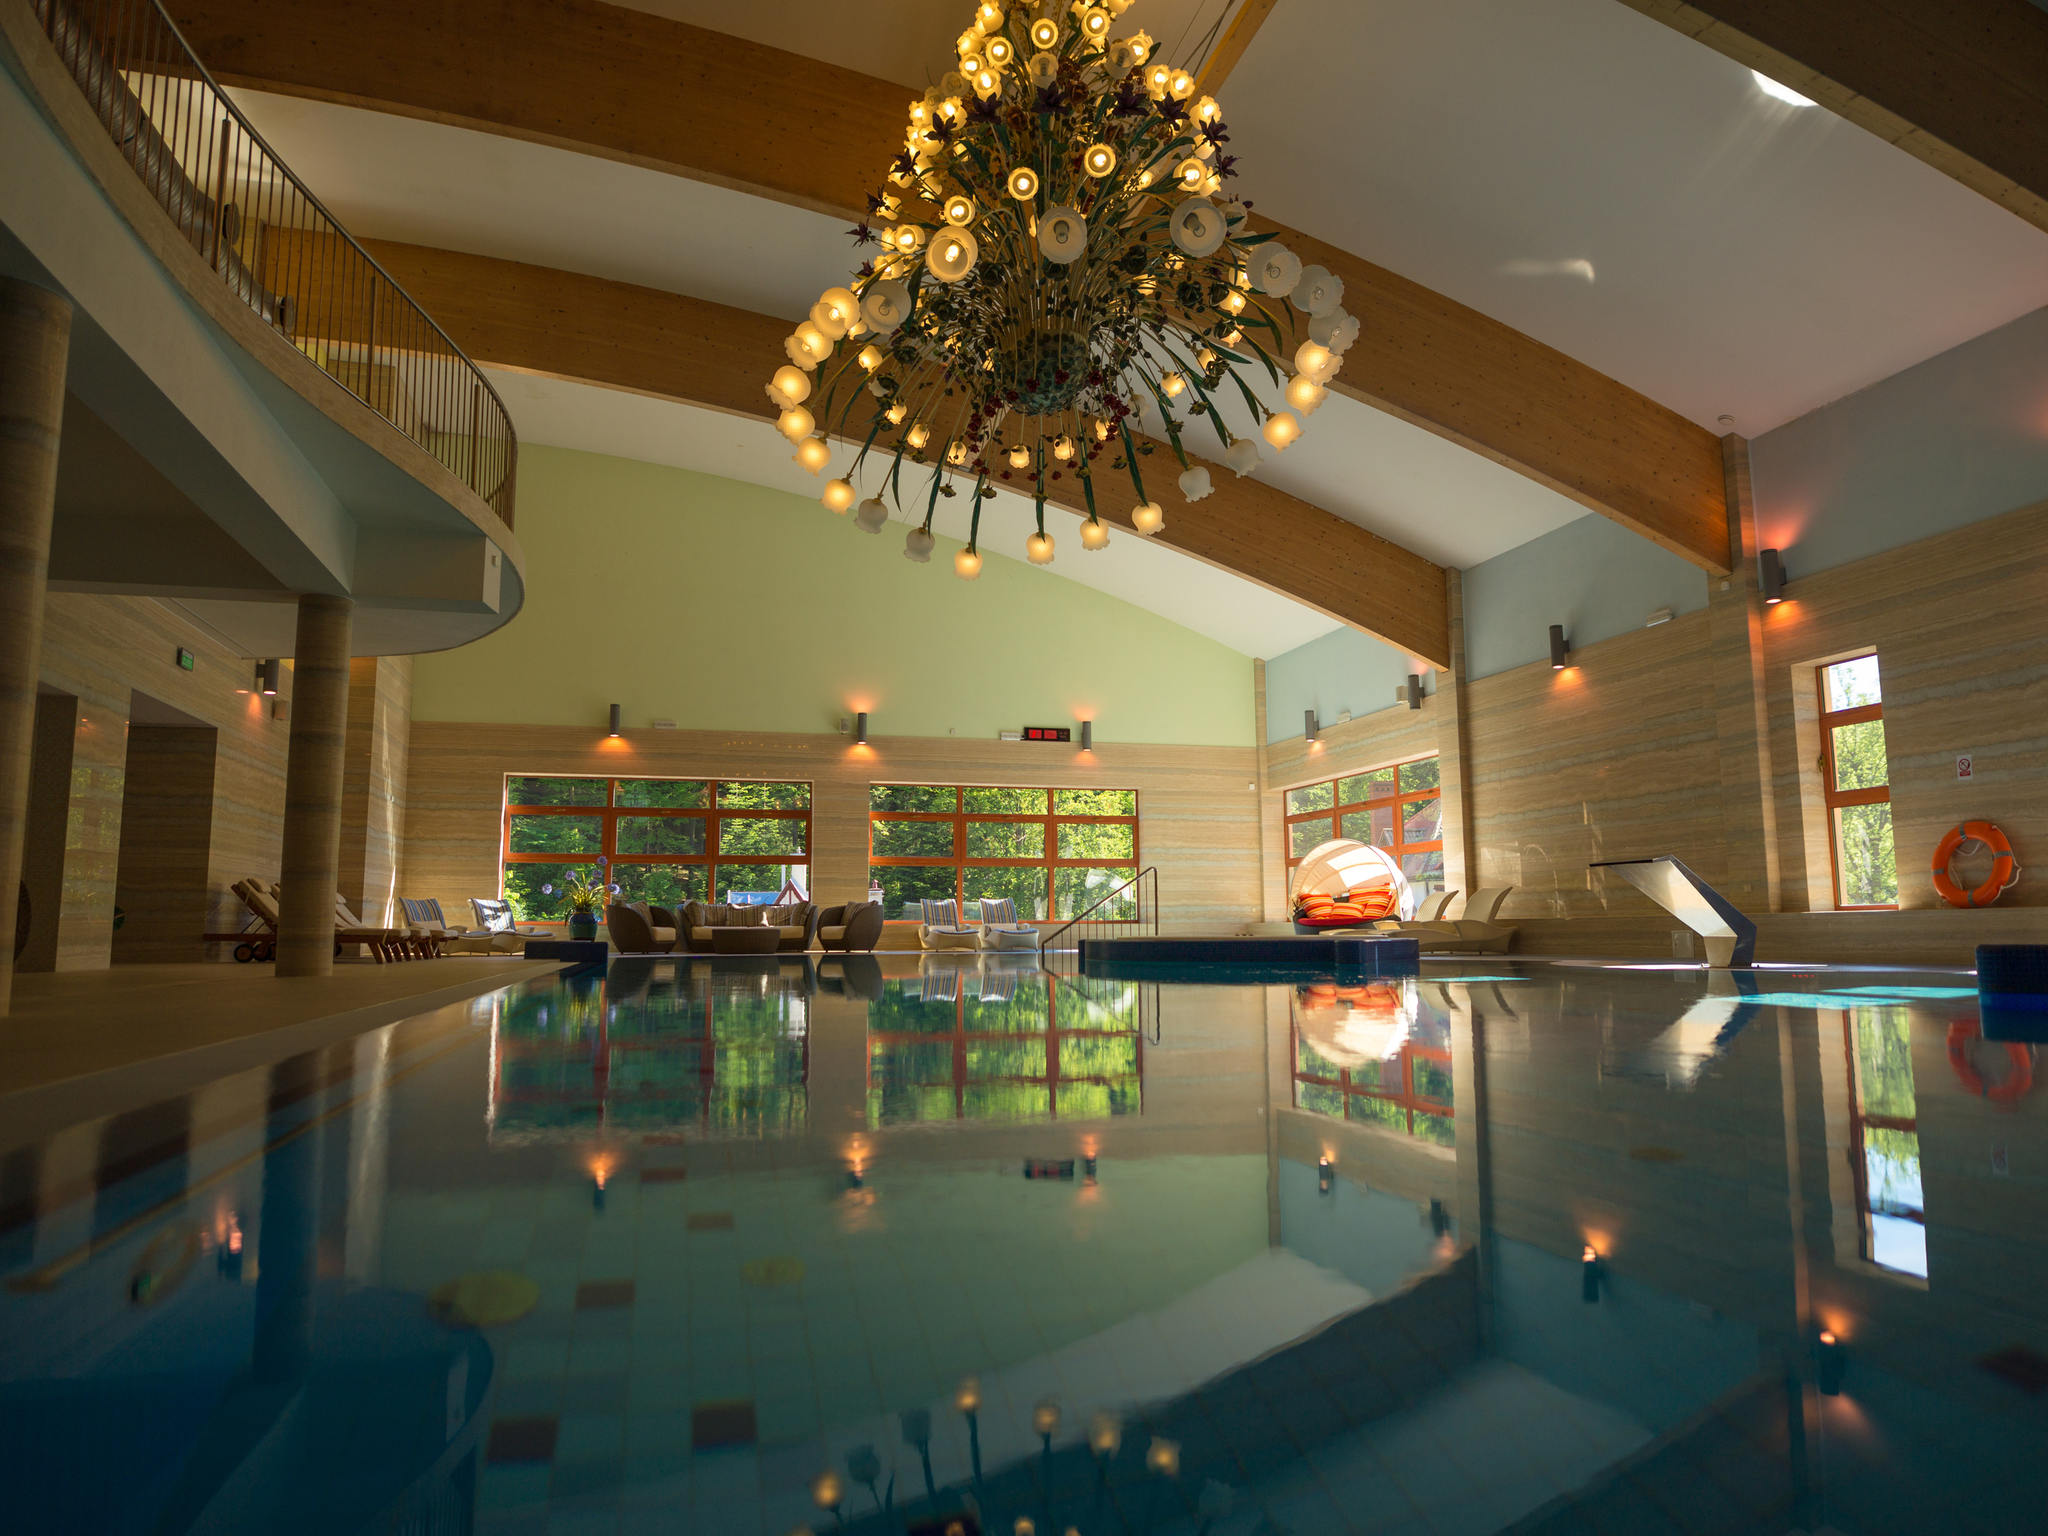 فندق - Hotel Mercure Krynica Zdroj Resort & Spa